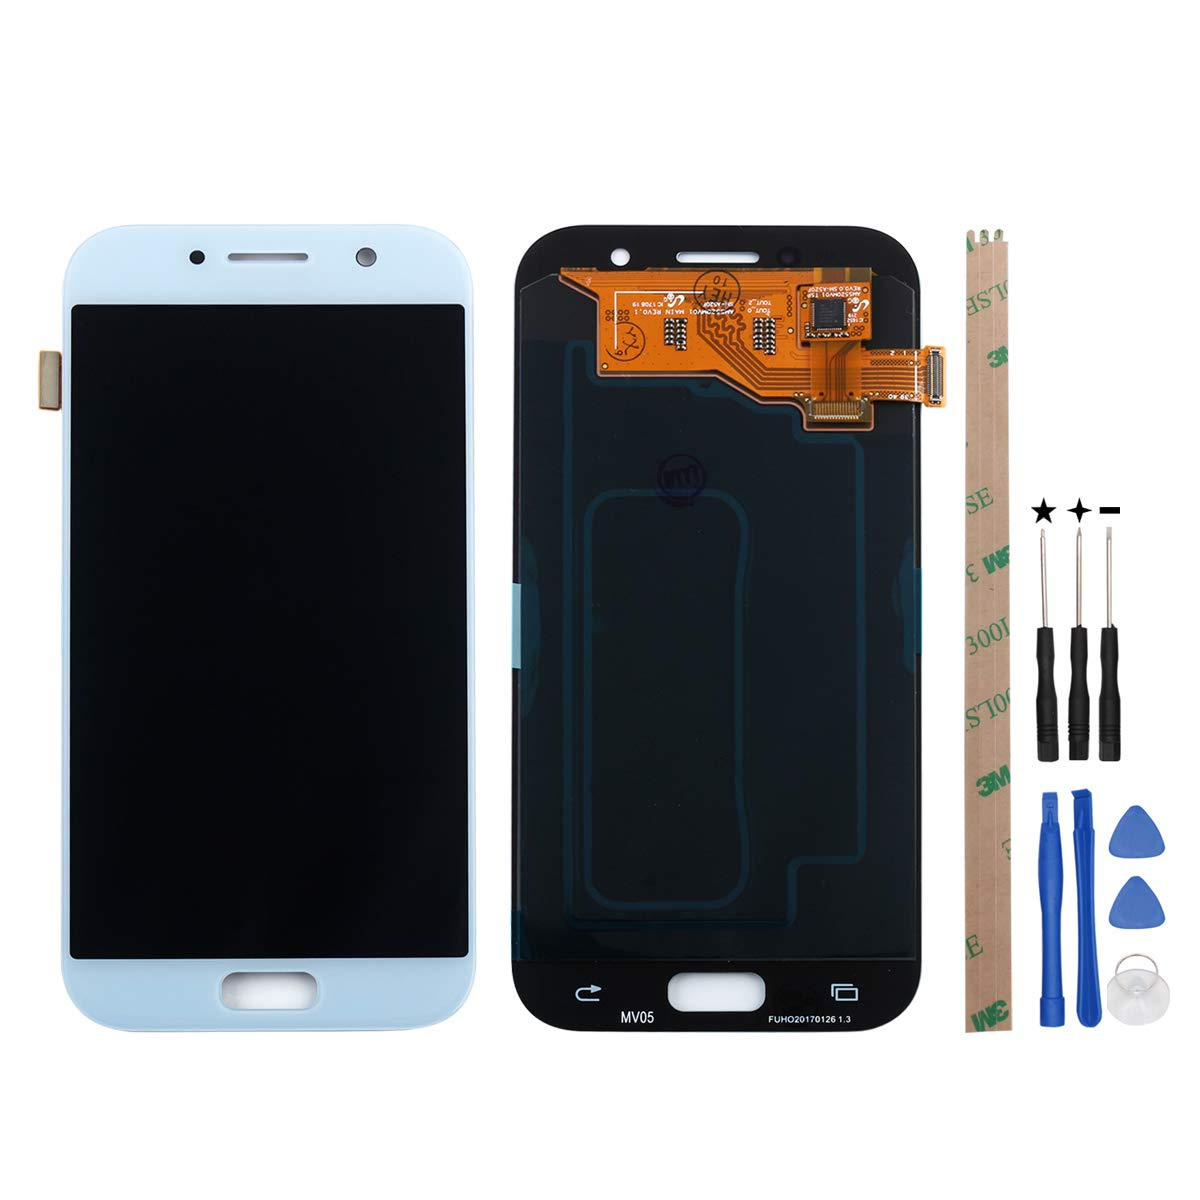 HYYT for Samsung Galaxy A5 A520 A520F 2017 LCD Digitizer Screen Replacement  LCD Display and Touch Screen Assembly (Light Blue)